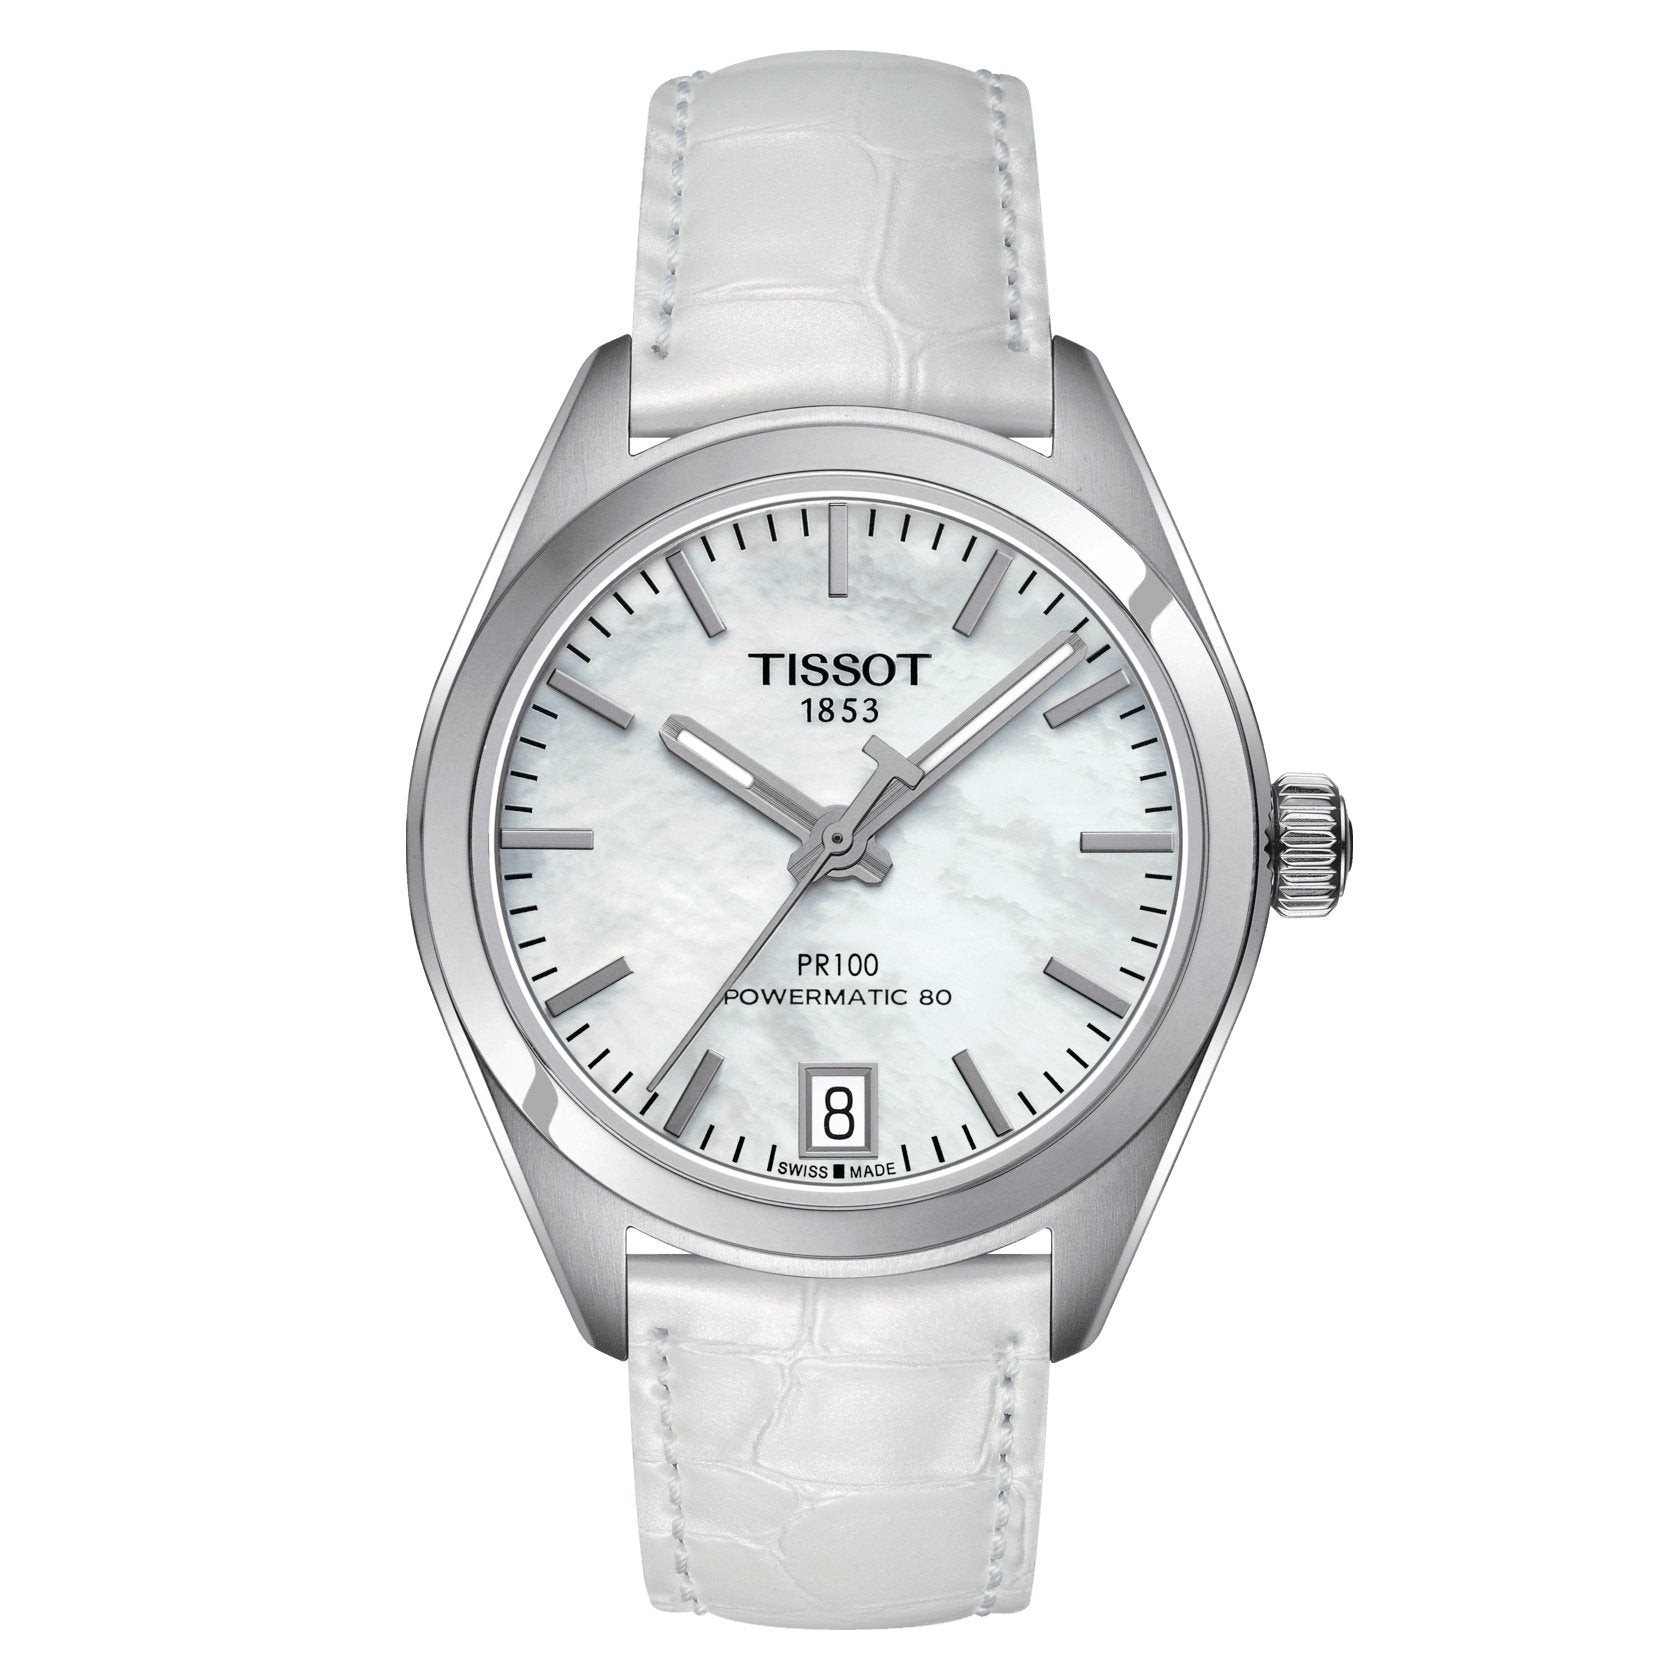 Tissot T-Classic PR 100 Powermatic 80 Date White - Watches & Crystals